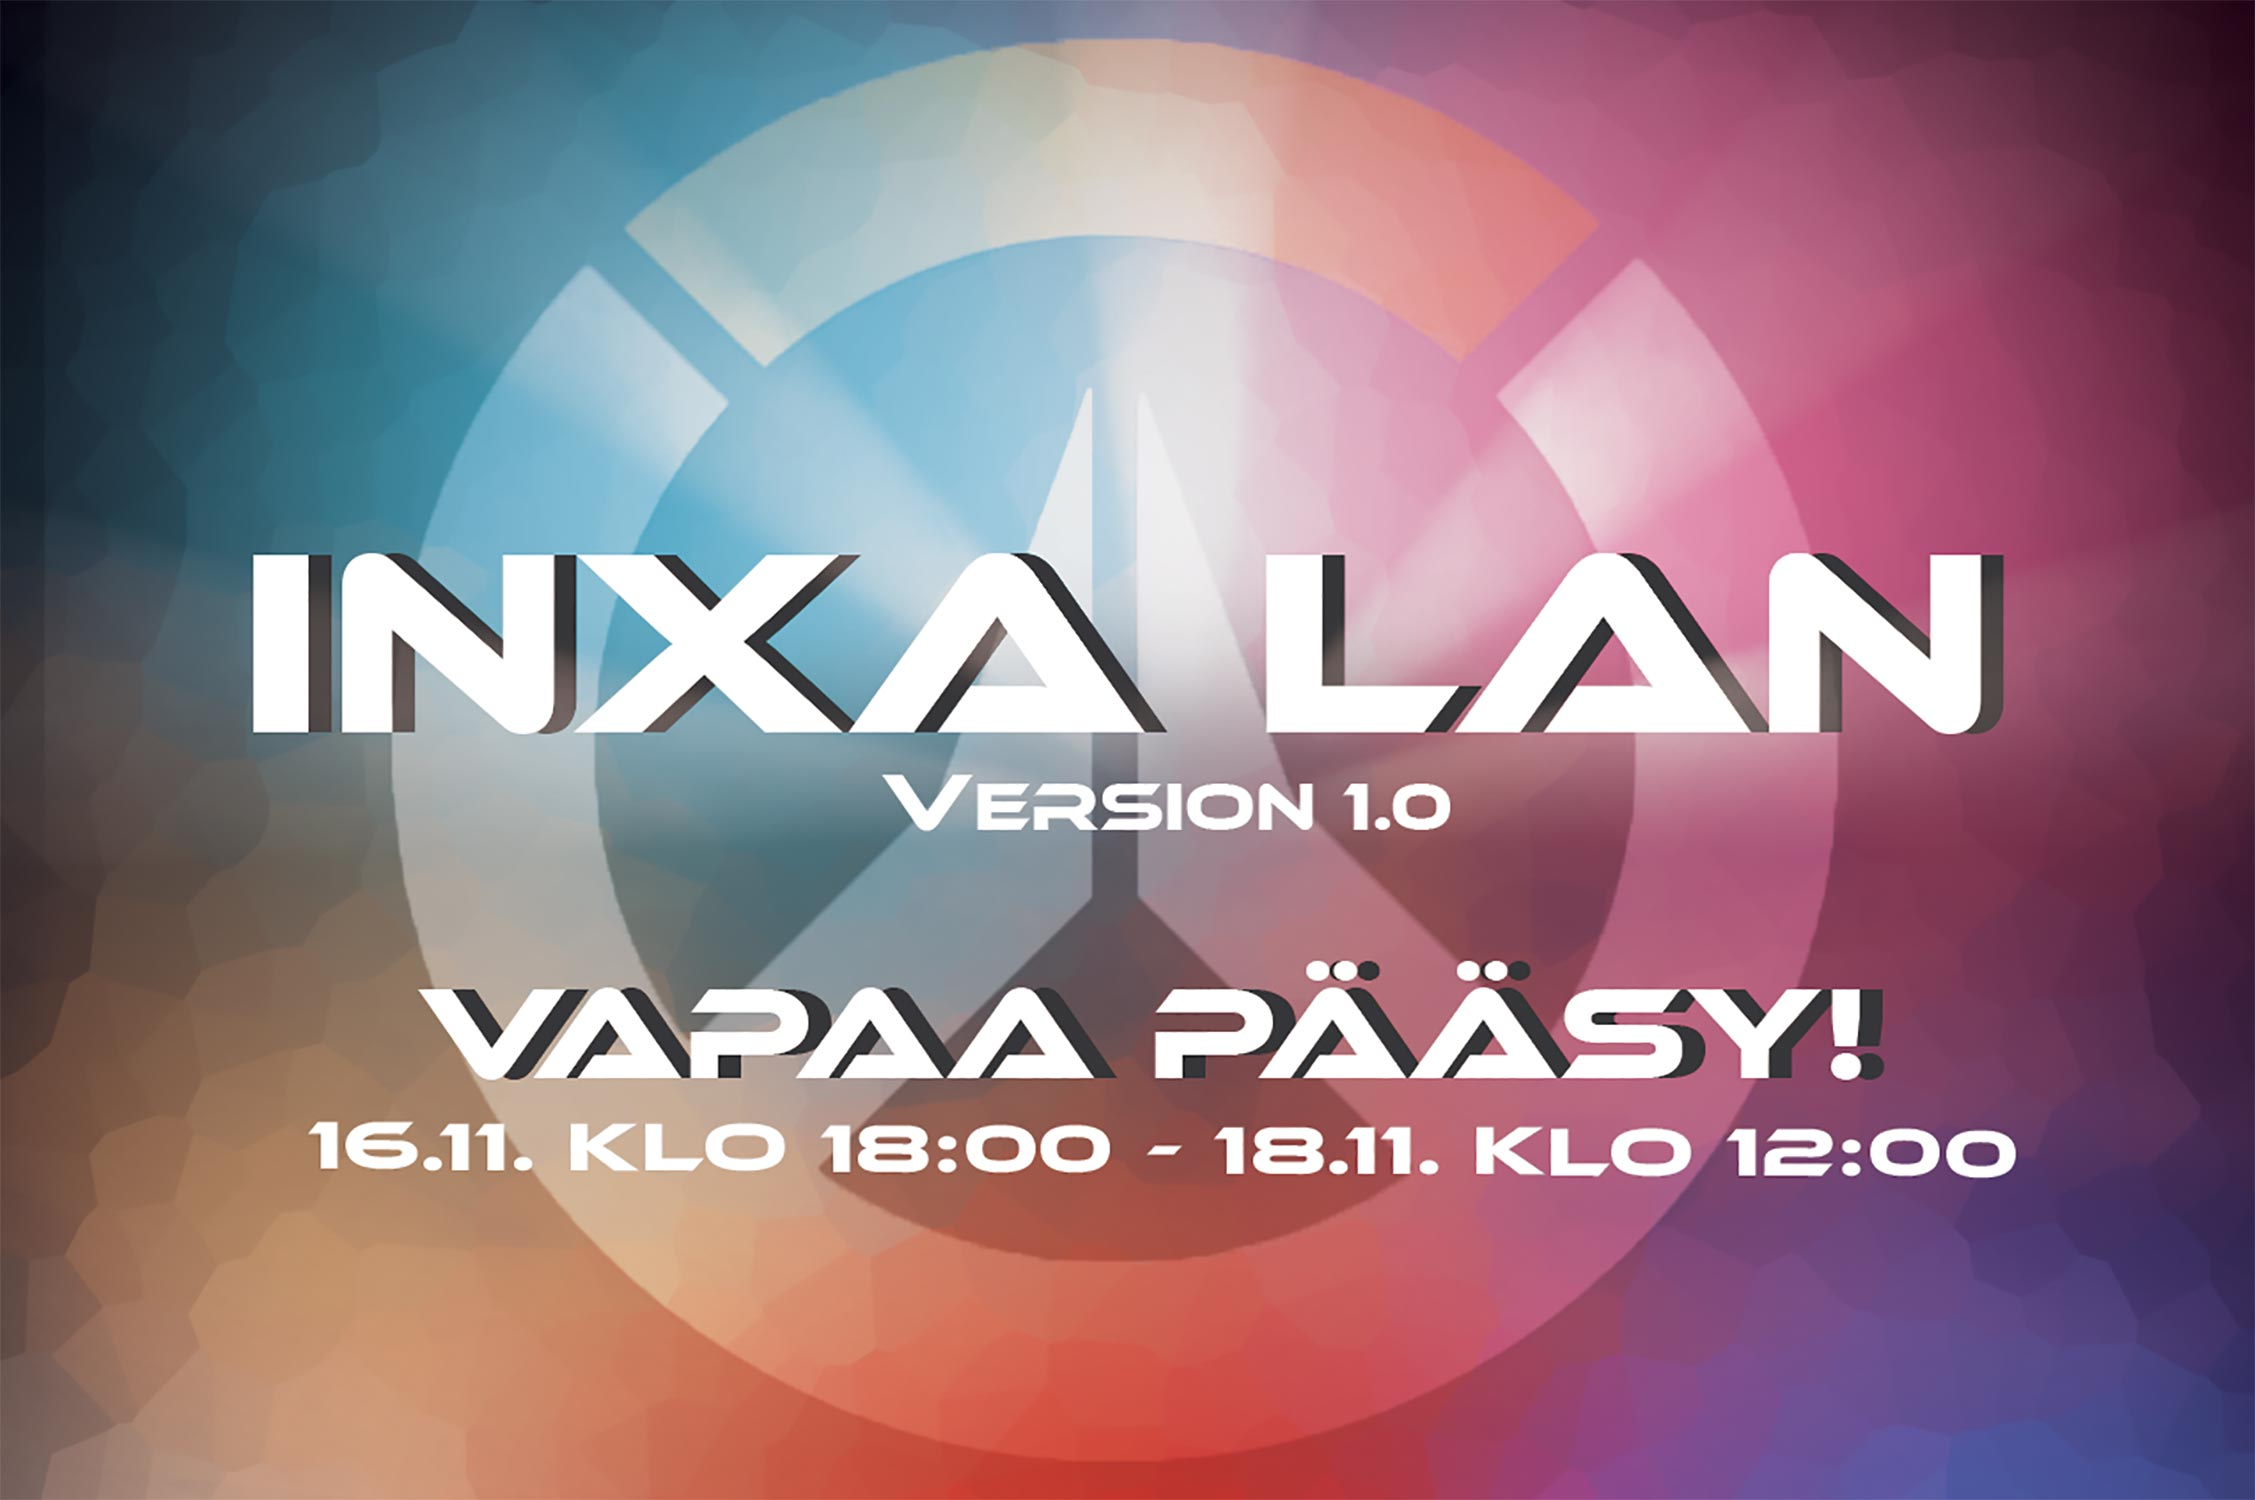 INXALAN version 1.0